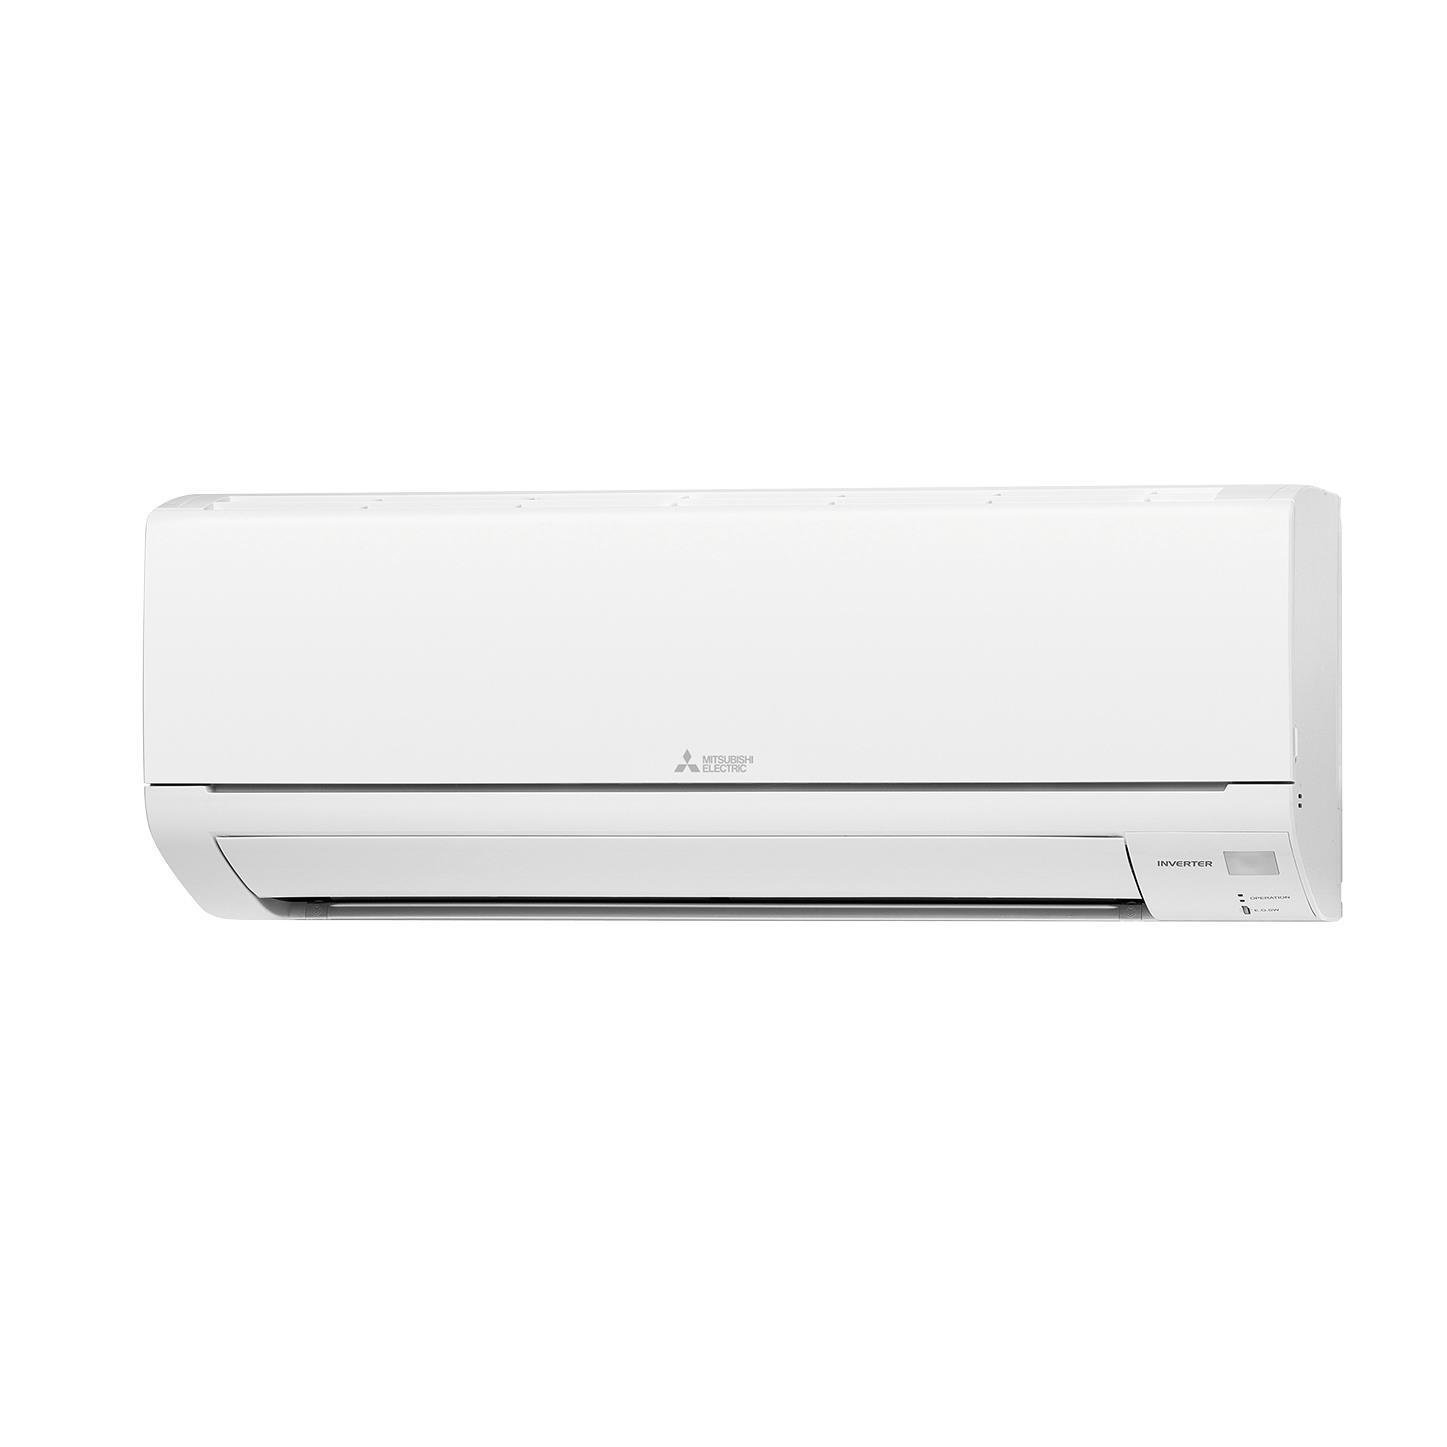 Mitsubishi 2.5kW Reverse Cycle Split Air Conditioner